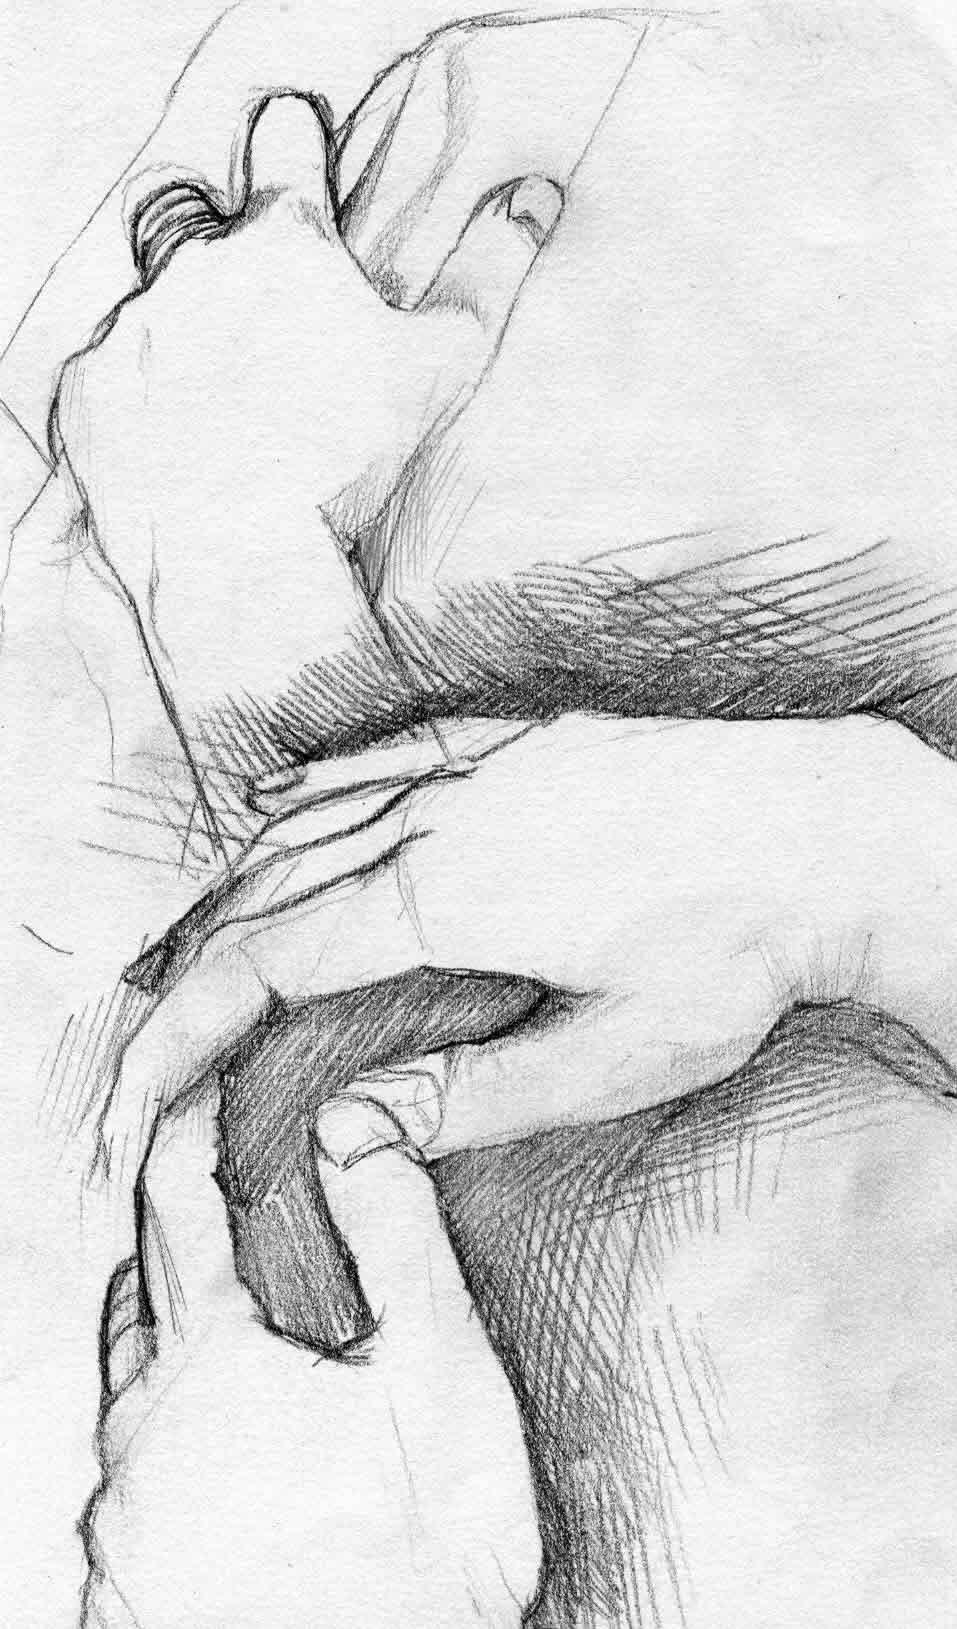 Study of a Hand by melolonta